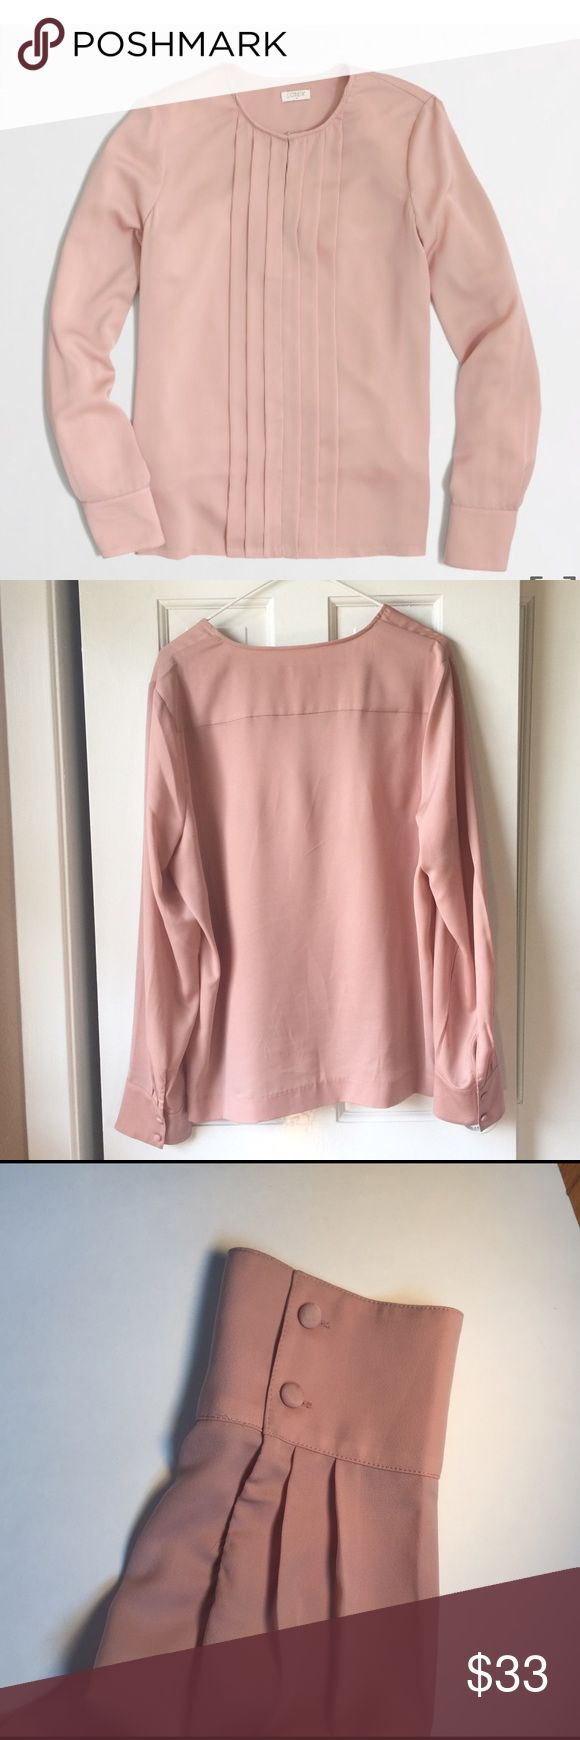 J.crew pleated blouse This great neutral blouse is made with the best quality and care. Perfect blouse for a pair of jeans on the weekend or business casual for work on Monday 😀 bust 22 inches length 25.5 inches J. Crew Tops Blouses